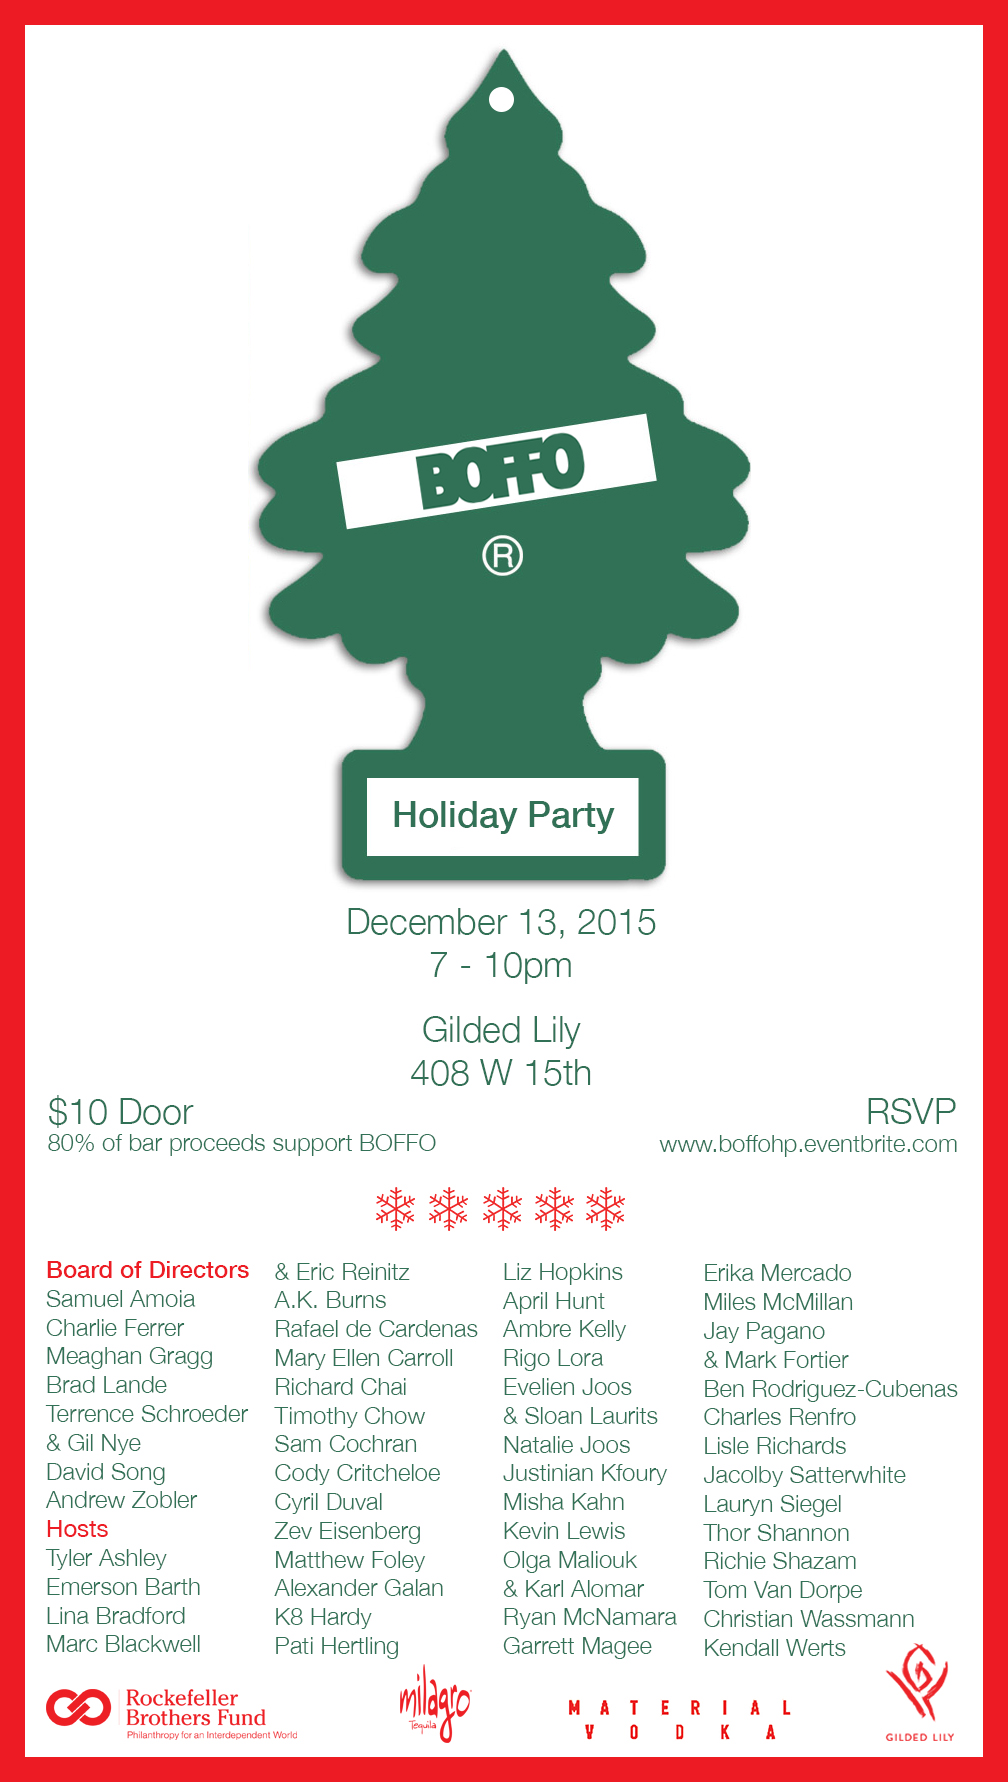 BOFFO Holiday Party